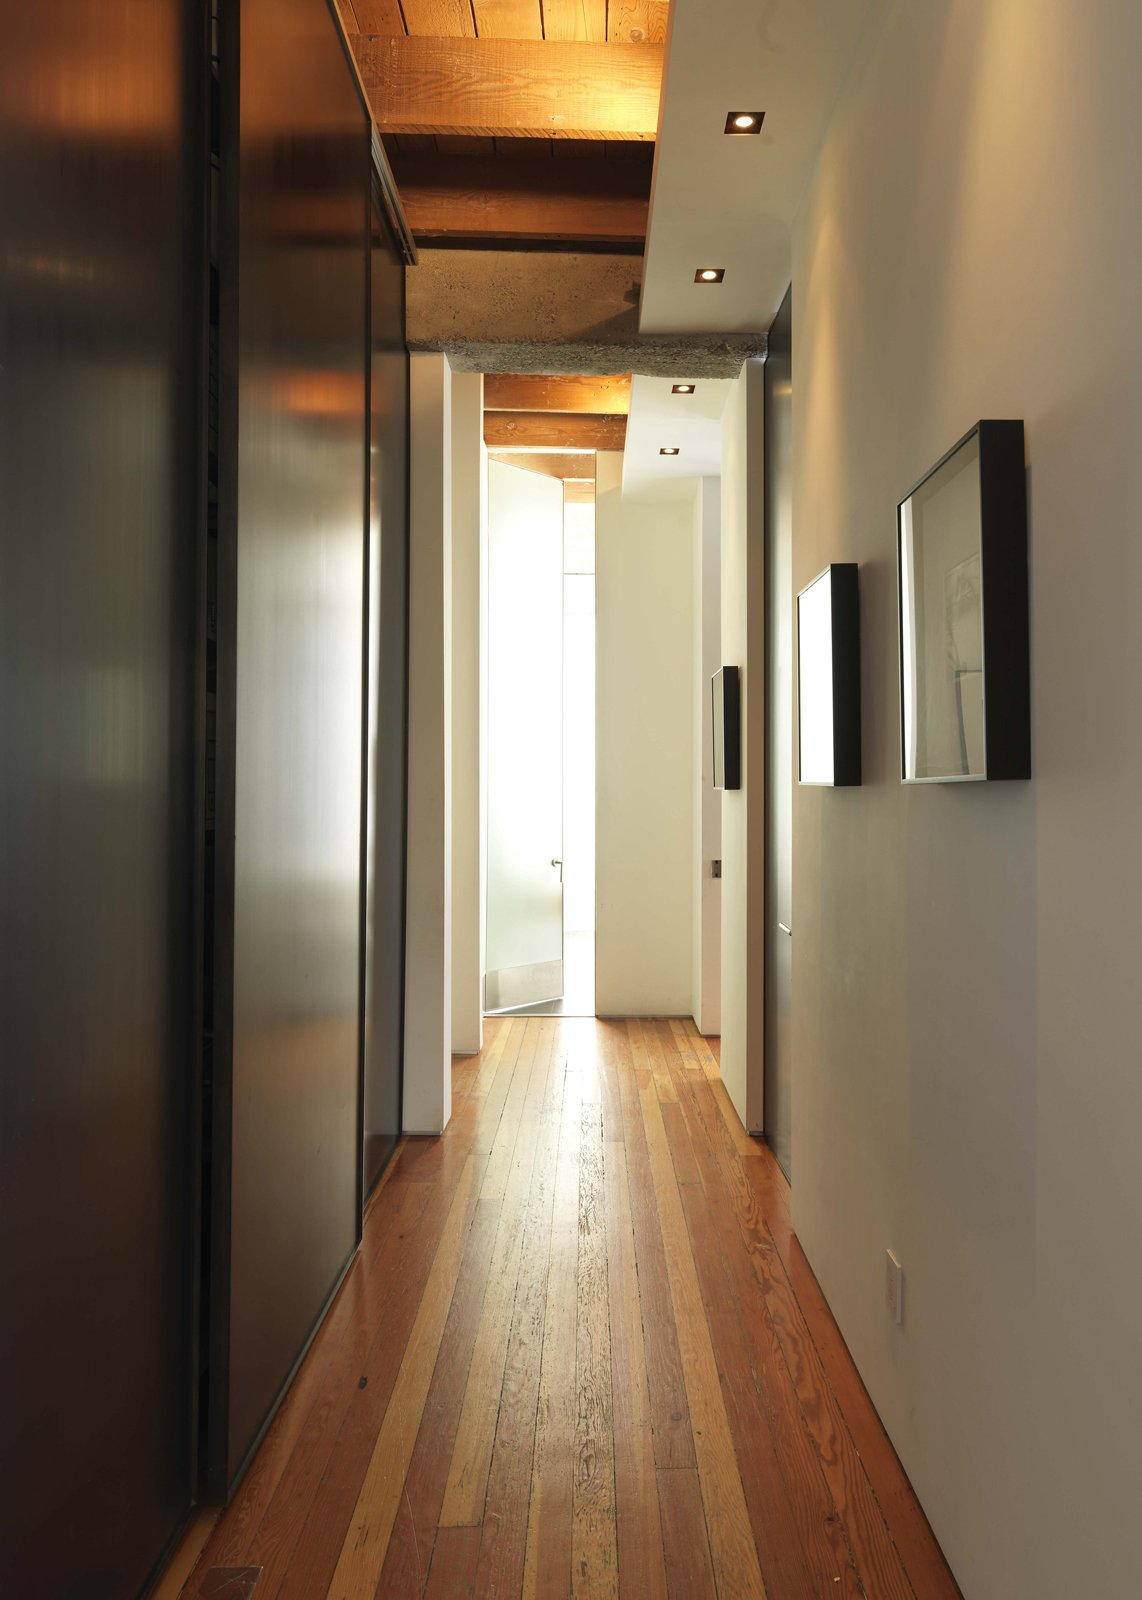 A long hallway from the living room separates the public and private sections of the home and extends the distance between the living quarters and work spaces.  Photo 6 of 7 in A Couple Cuts Their Commute and Designs All Day